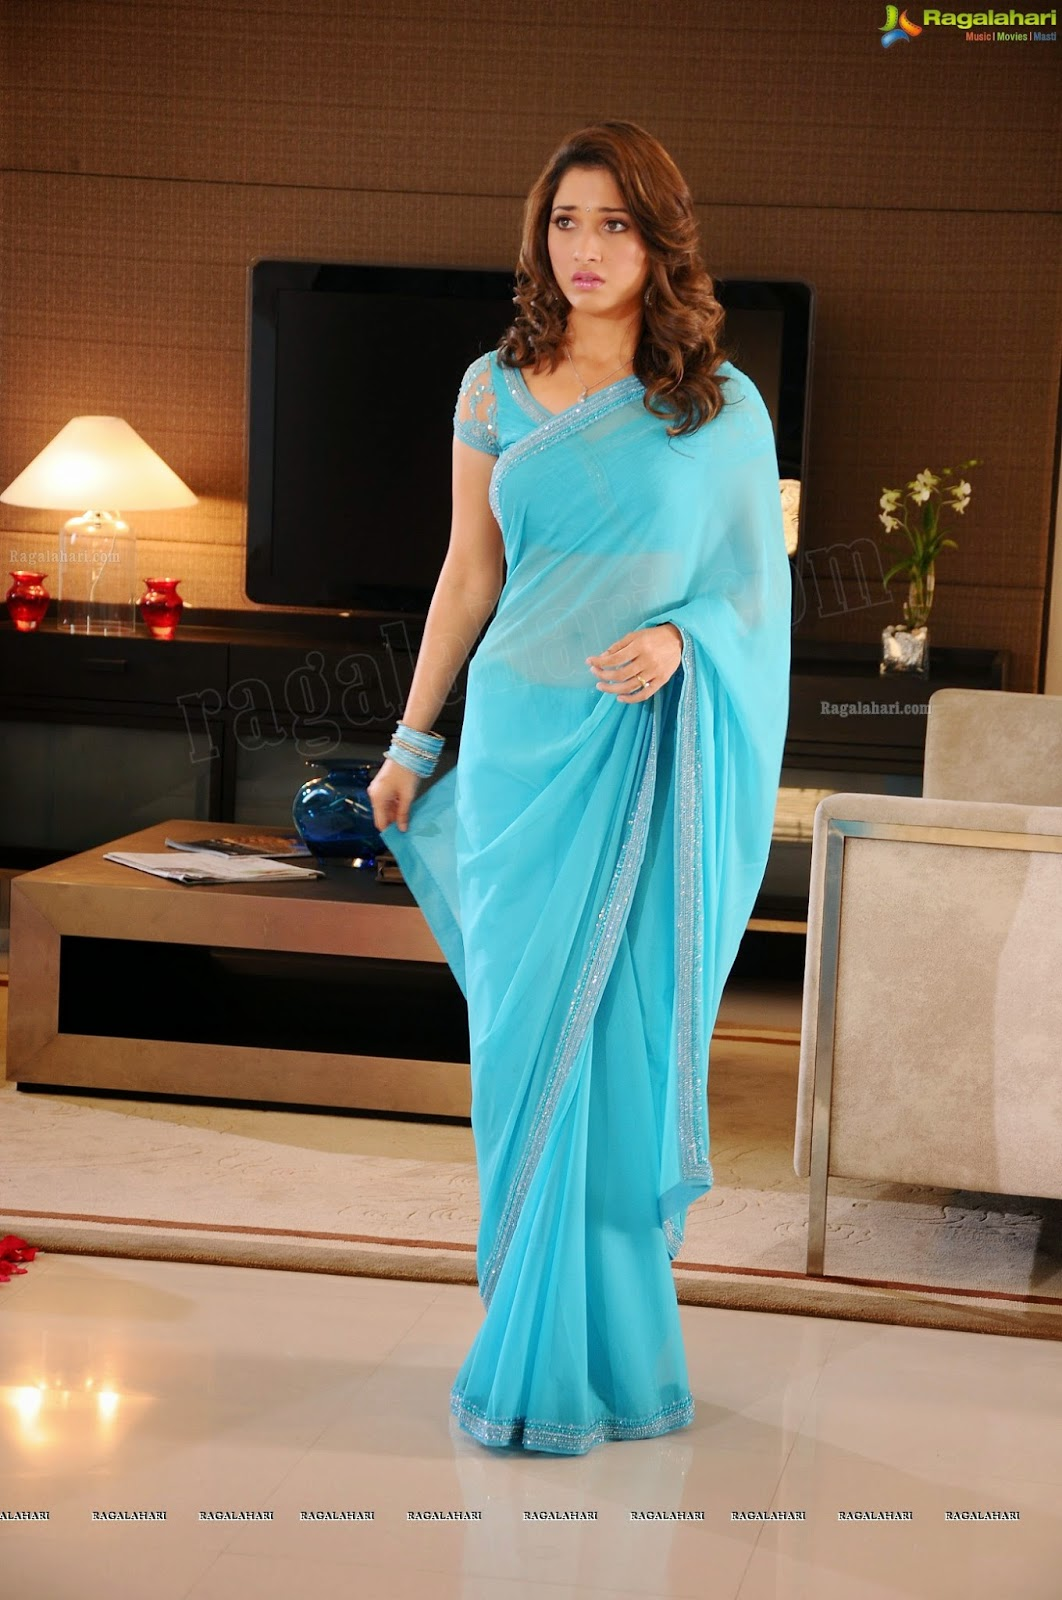 Tamanna Blue Saree: Indian Garam Masala: Tamanna Bhatia Latest Hot Back Spicy